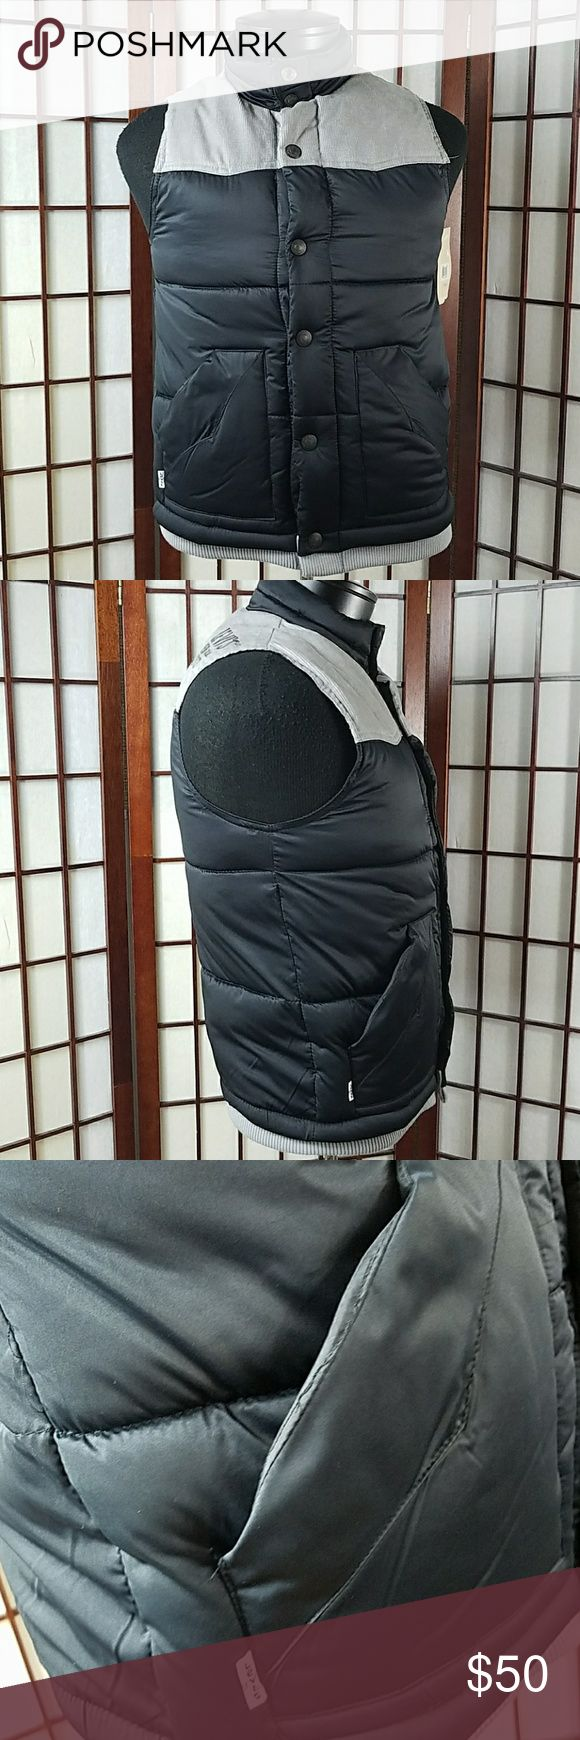 """Men's Puffer VEST SIZE SMALL New with tags  LEVI'S SIZE SMALL levis DENIM rrdmk. since 1873 embroidered on the right back shoulder  PUFFER VEST STYLE Buttons front  Two pockets Solid pattern  Made of polyester and cotton  Measurements Approximate  Pit to pit 18.5"""" Shoulder to hem 24"""" Levi's Jackets & Coats Vests"""